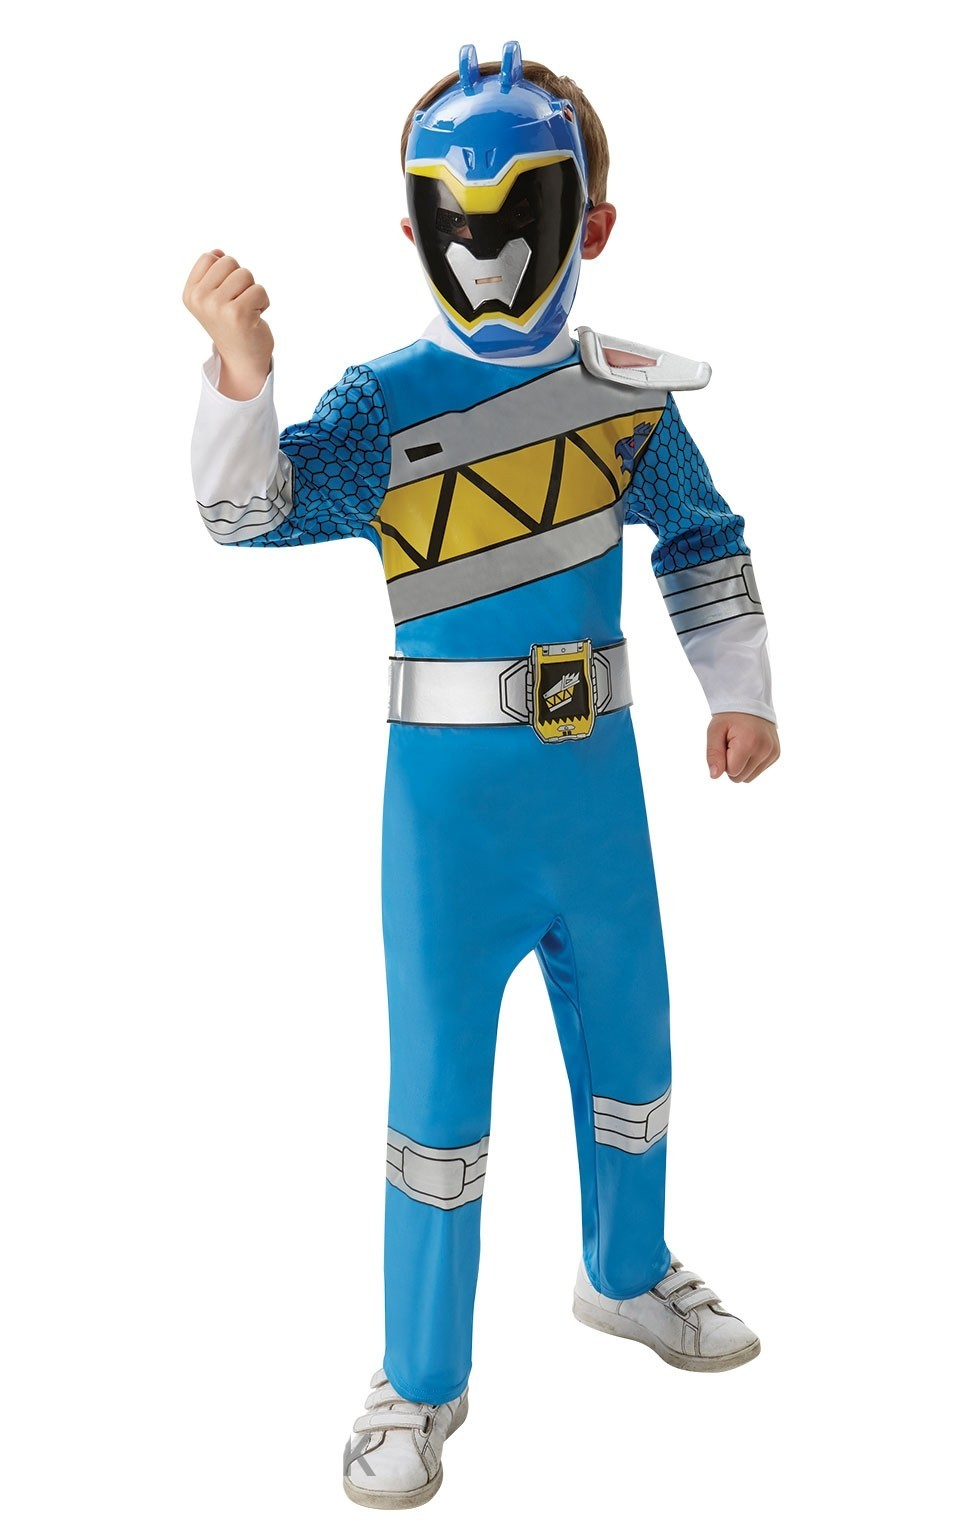 Костюм Кода из Power Rangers фото 1